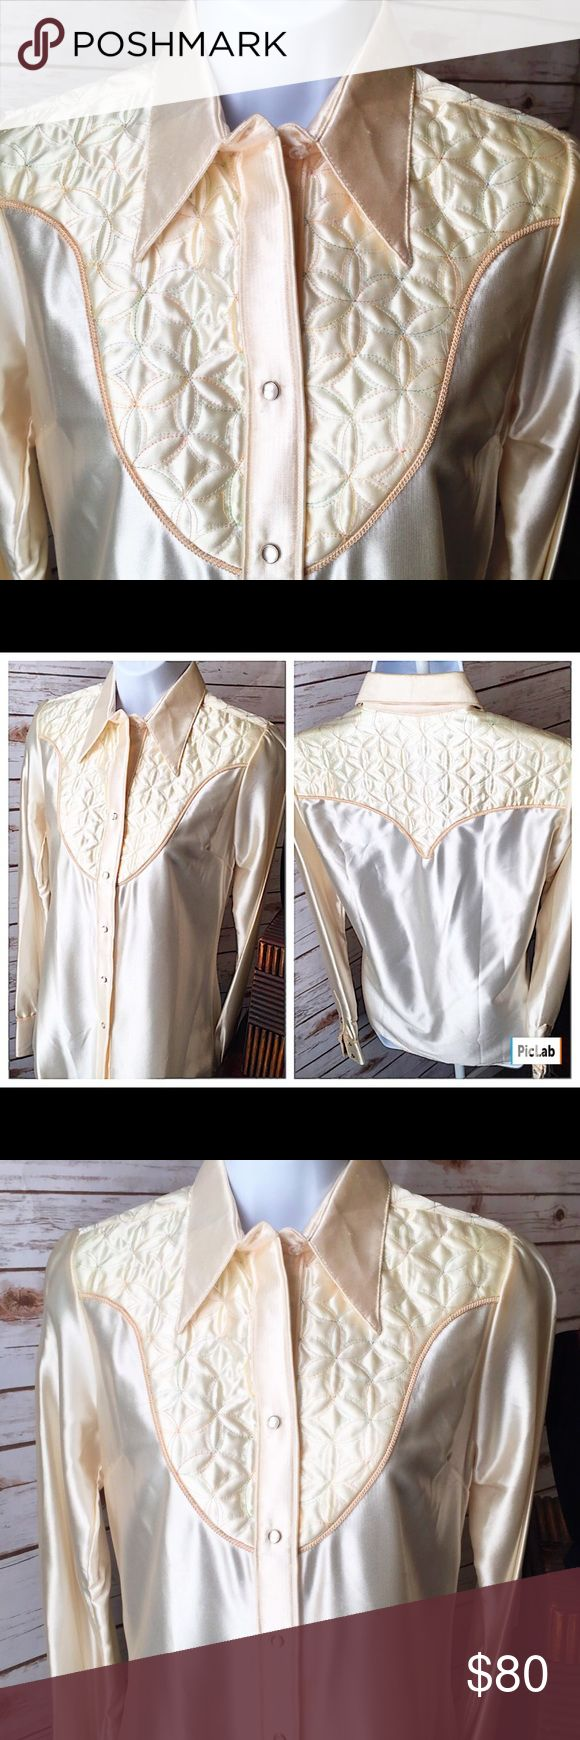 Vintage Rockmount Custom fitted western show shirt Vintage Rockmount Custom fitted western show shirt with pearl snaps.  Mint condition. Used only for photo shoot size 32 Rockmount Tops Button Down Shirts